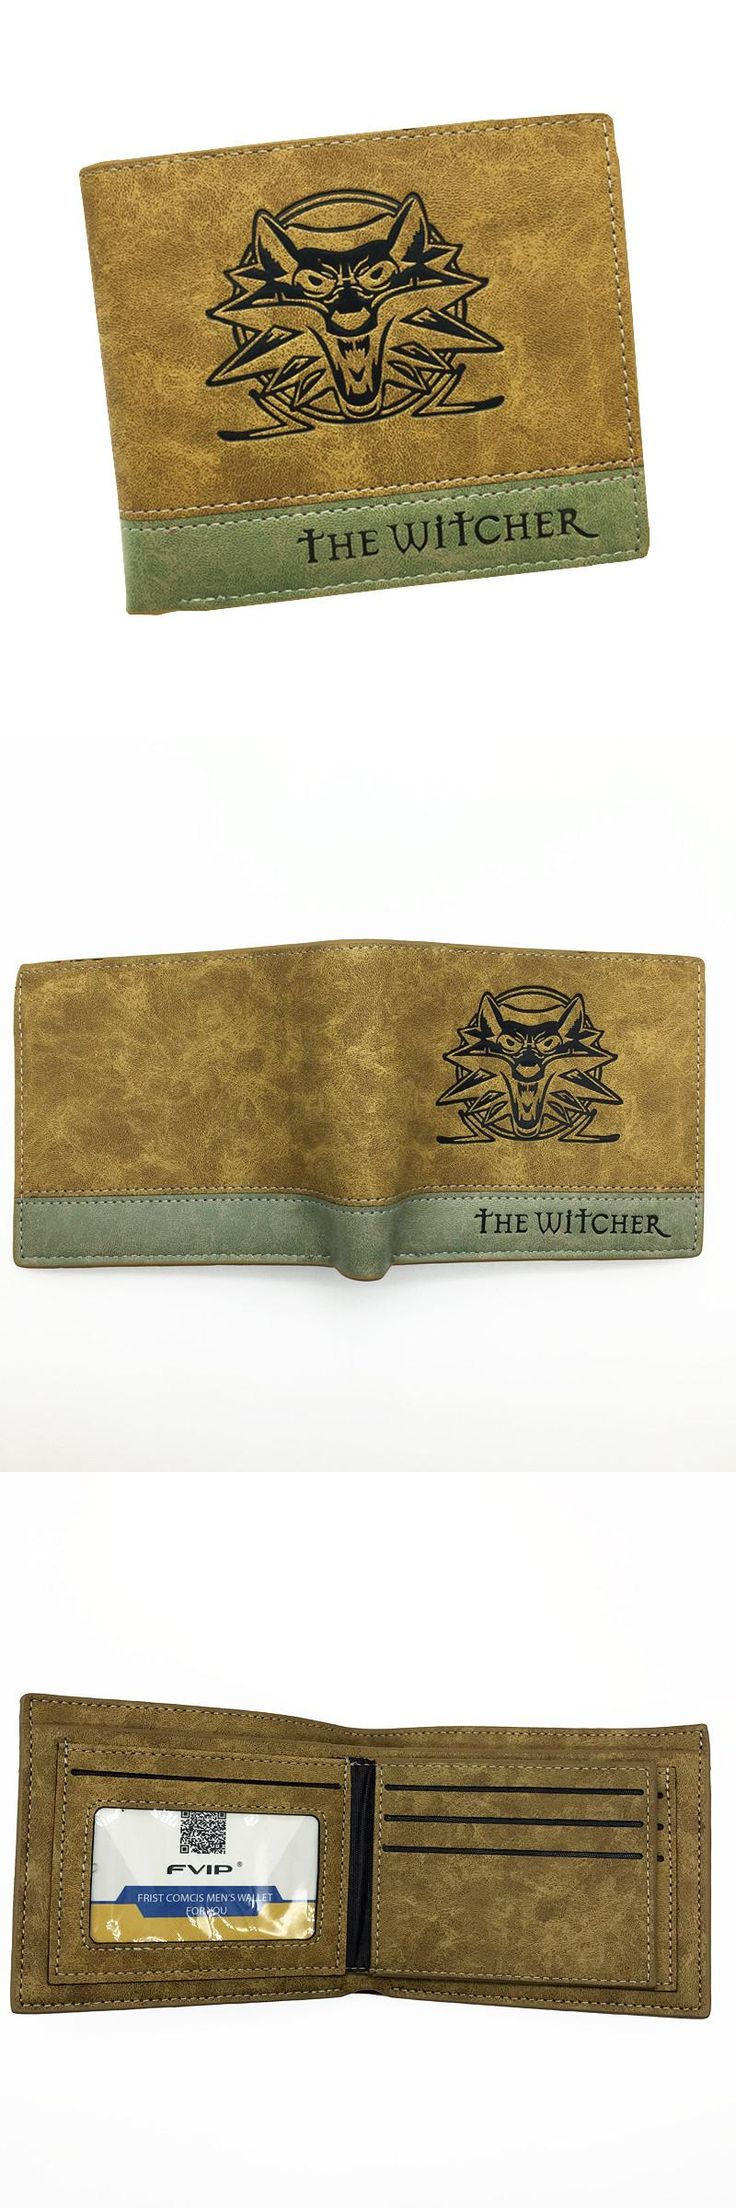 [Visit to Buy] Hot Game Wallet OW / The Witcher / Sword Art Online Soft PU Leather Men Wallets With Cion Pocket for Young #Advertisement